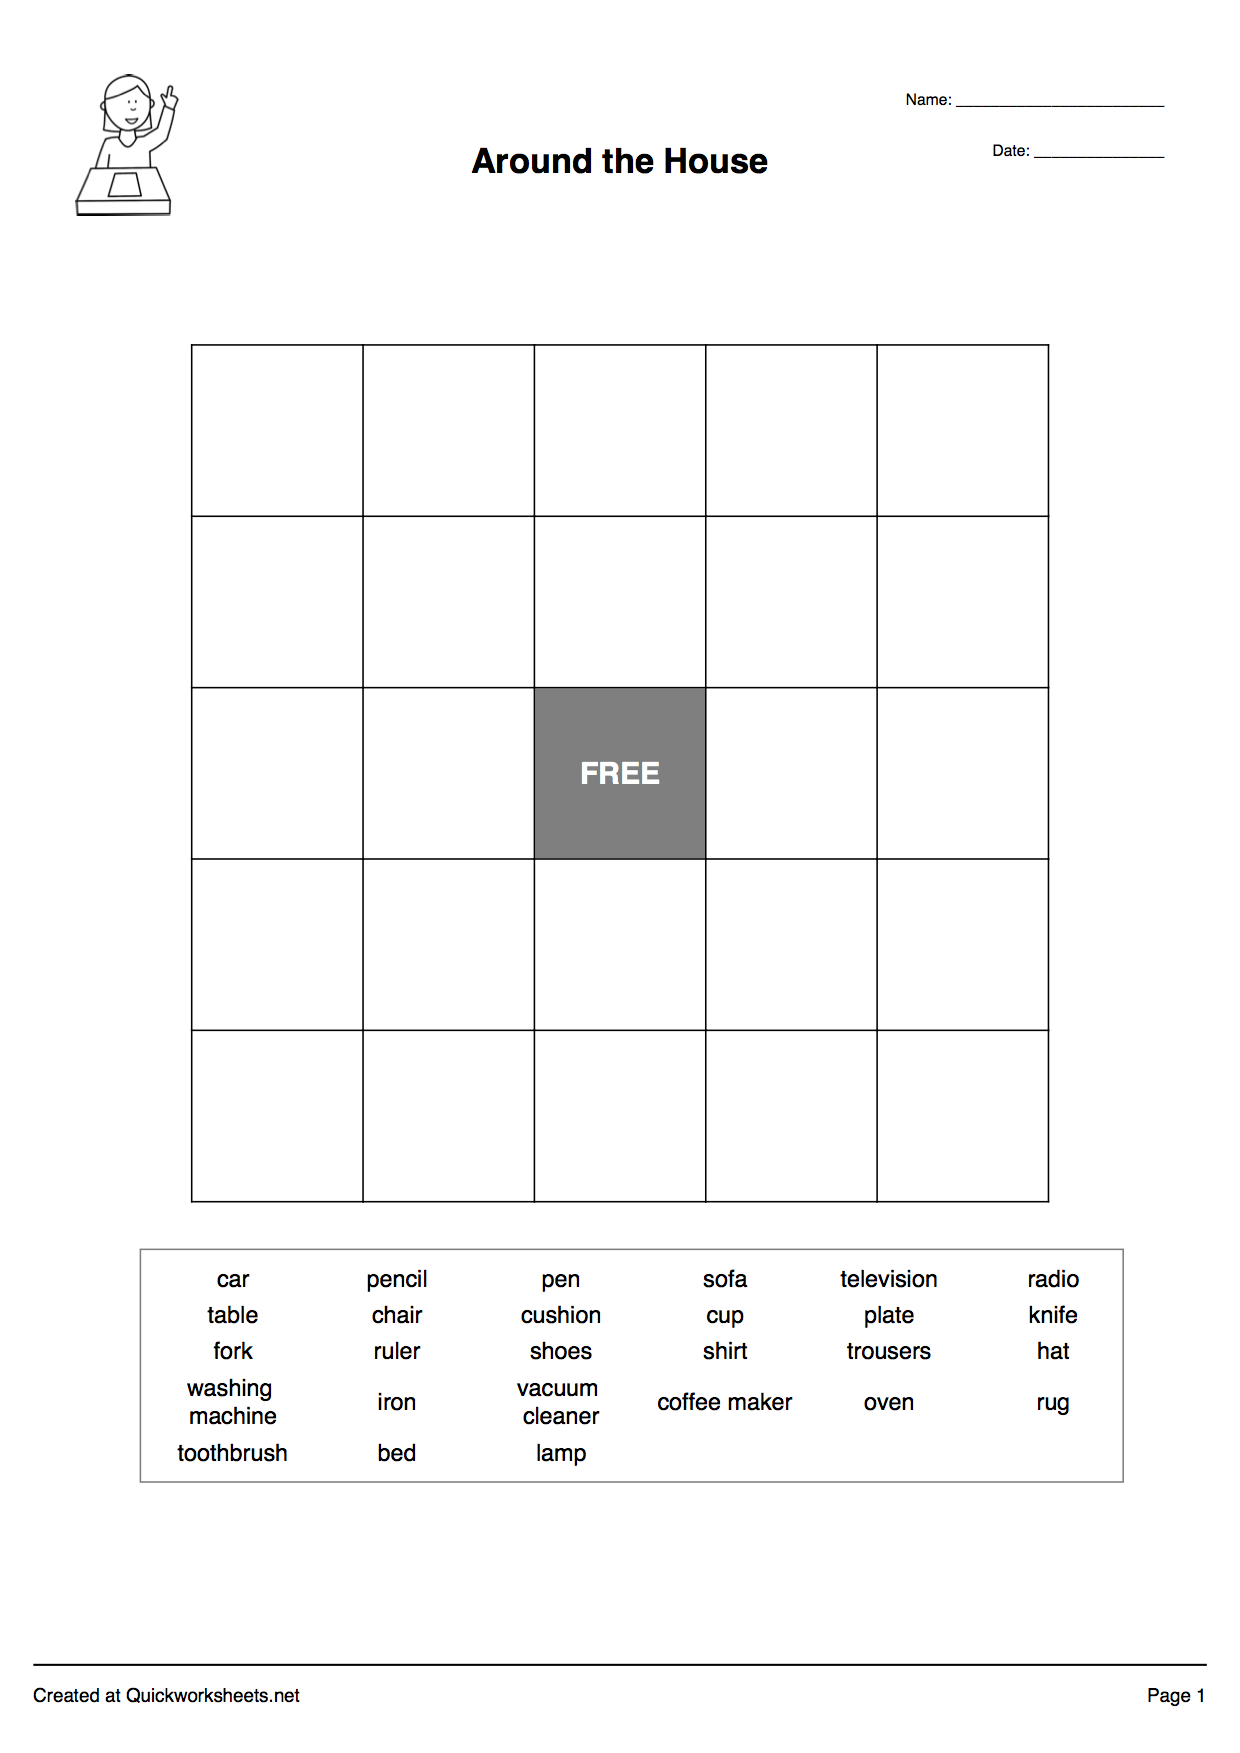 Worksheets Create Your Own Spelling Worksheets word scramble wordsearch crossword matching pairs and other bingo grid maker worksheet thumbnail